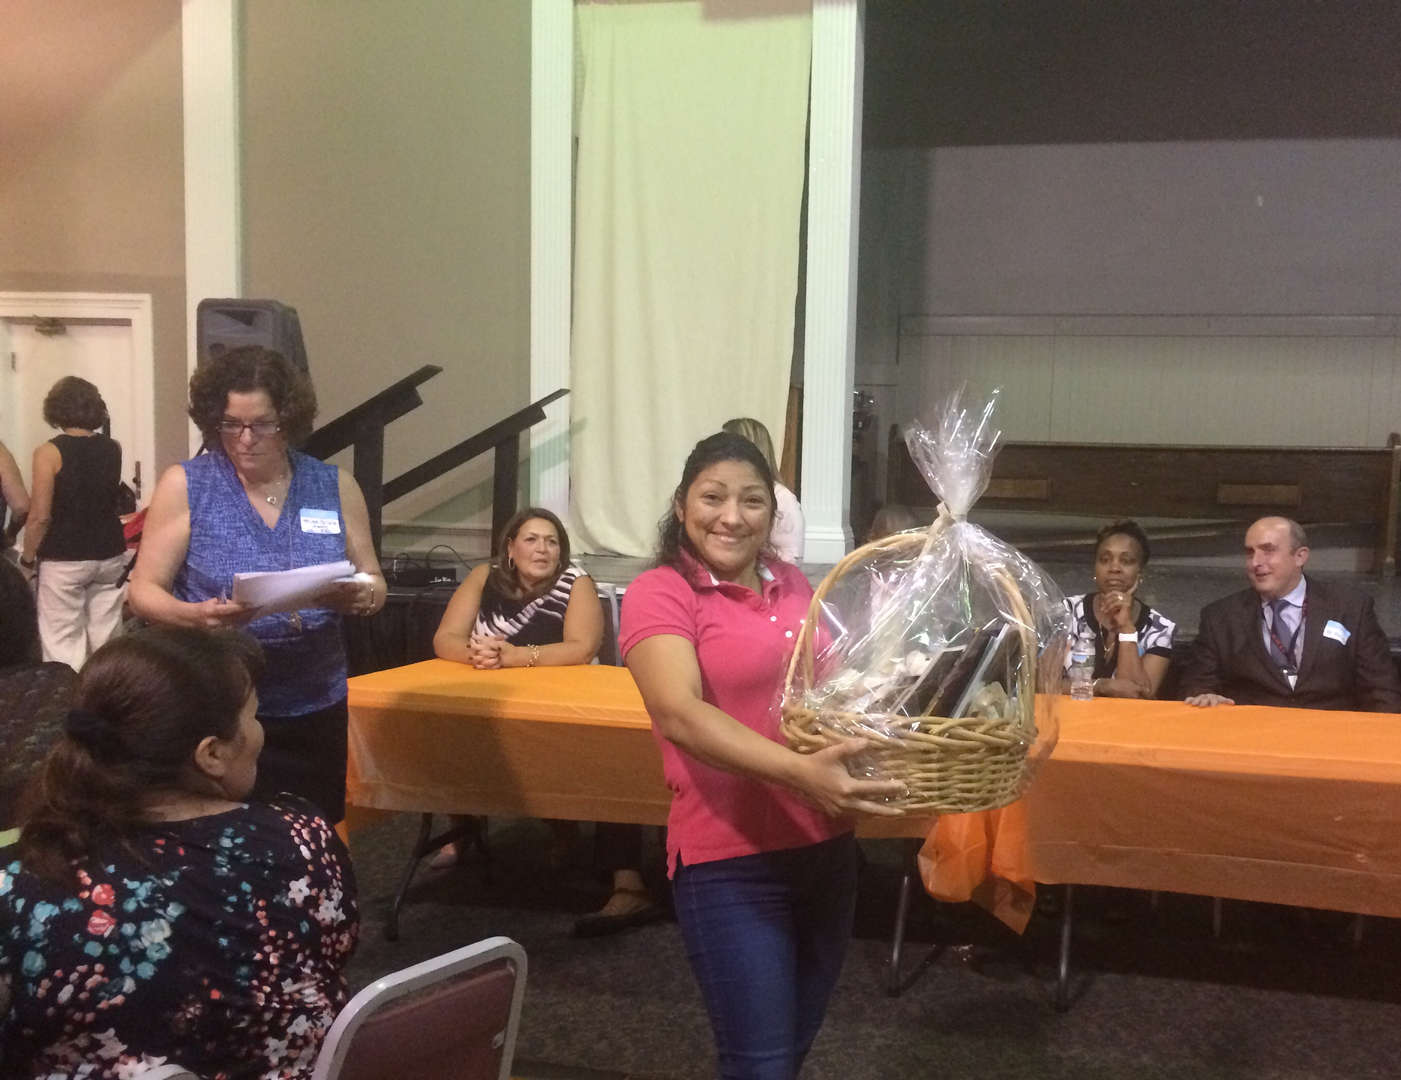 The Nyack Center Welcome Night is an annual event where families are invited to meet District leaders, ask questions and win prizes.  Translation services, dinner and childcare are provided!